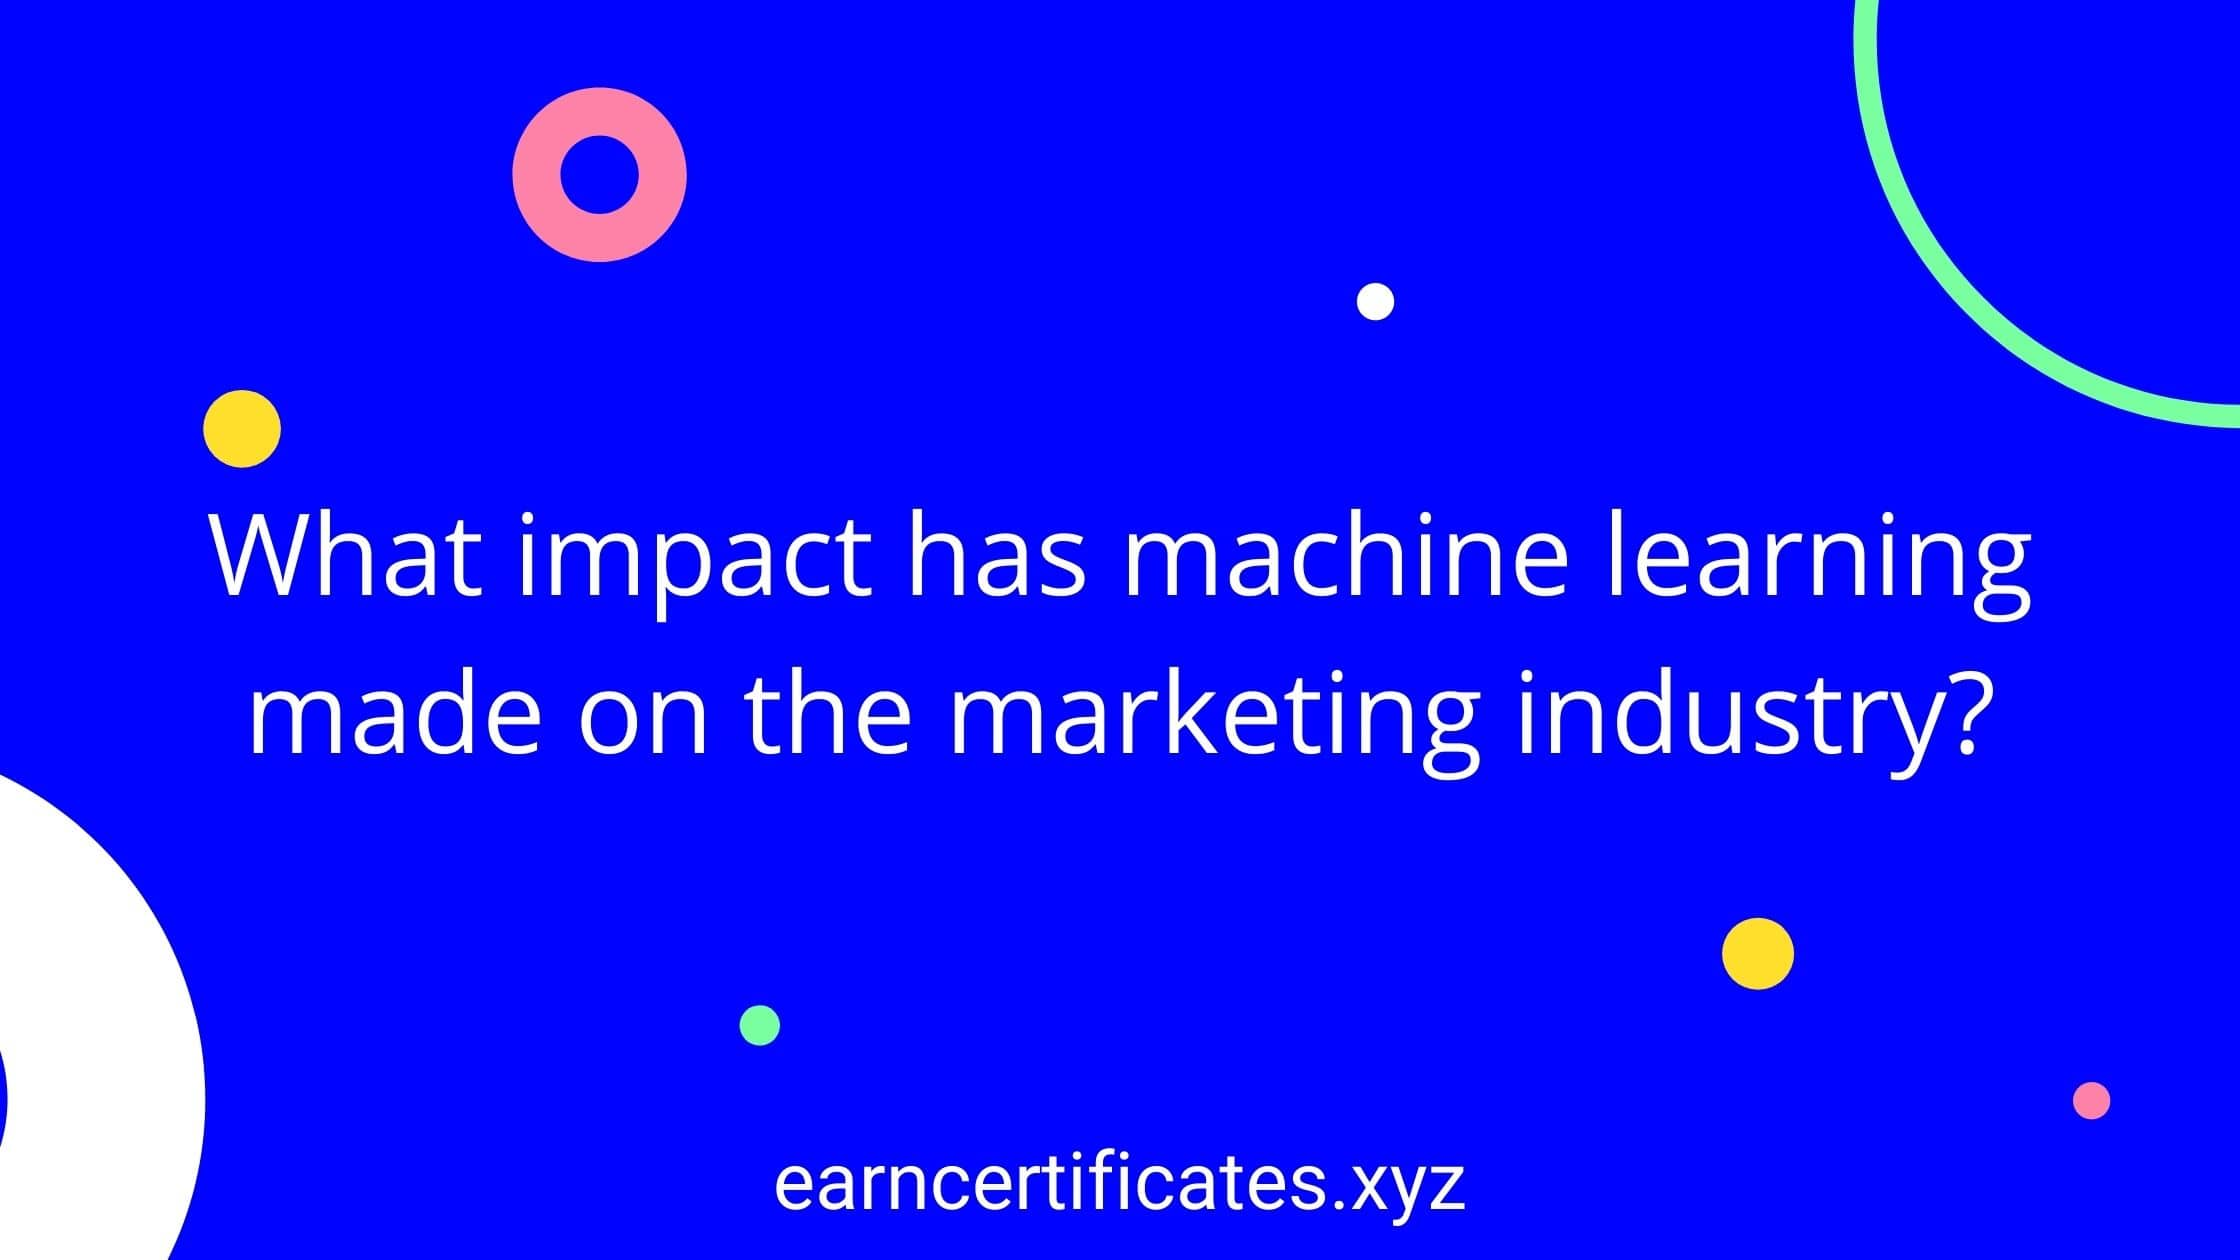 What impact has machine learning made on the marketing industry?